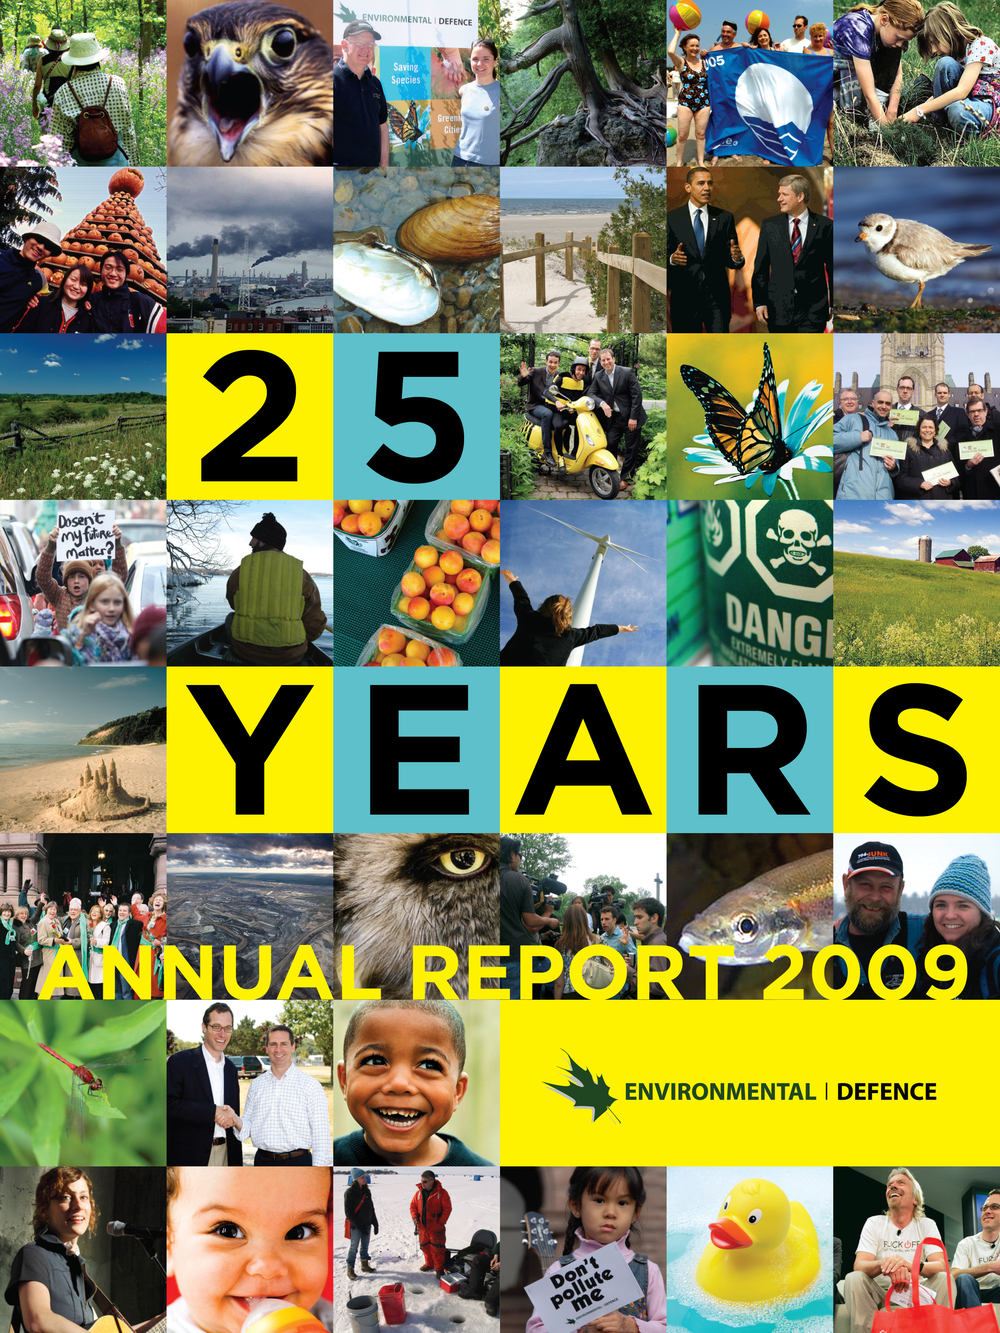 ED_AnnualReport2009_COVER.jpg